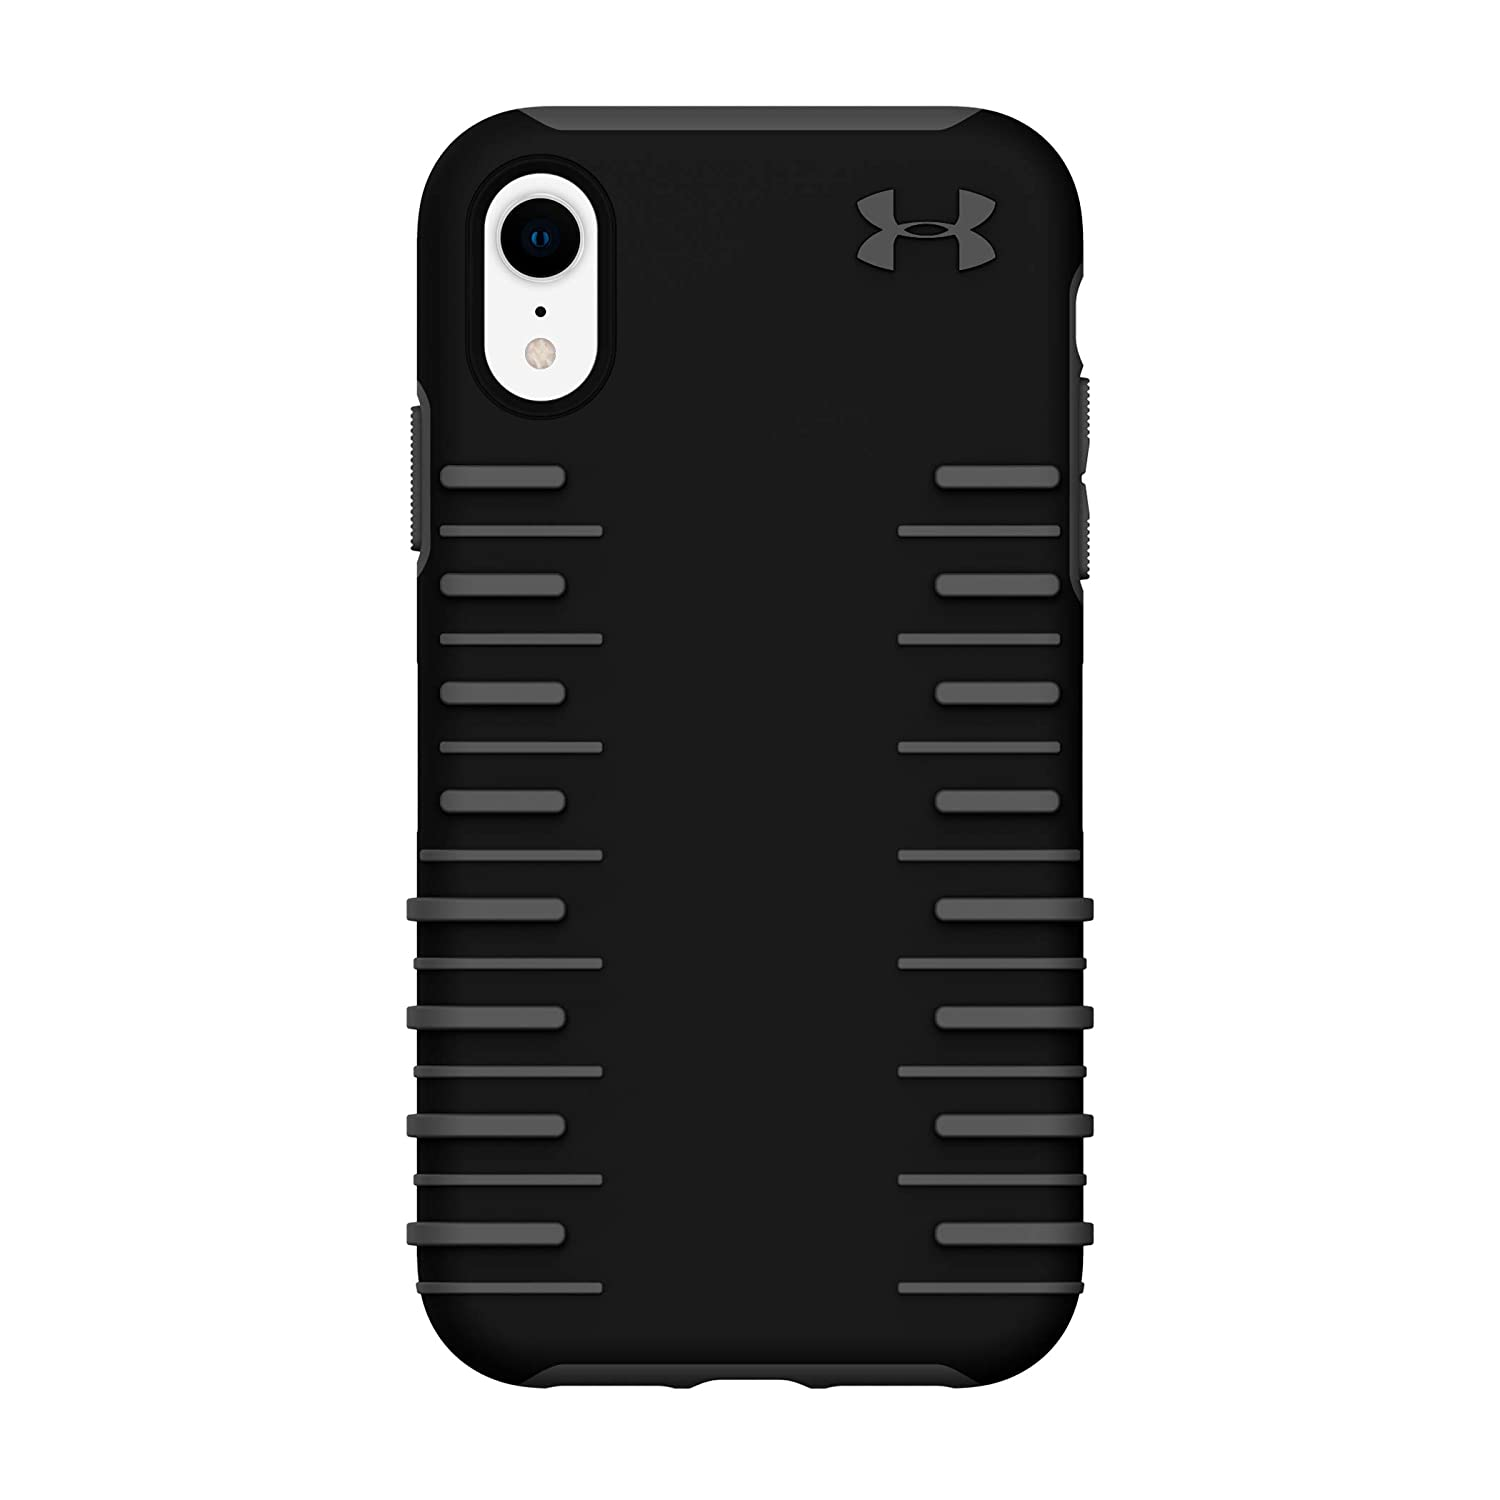 best service c430e 47d60 Under Armour Phone Case   For Apple iPhone XR   Under Armour UA Protect  Grip 2.0 Case with Rugged Design and Drop Protection - Black / Graphite